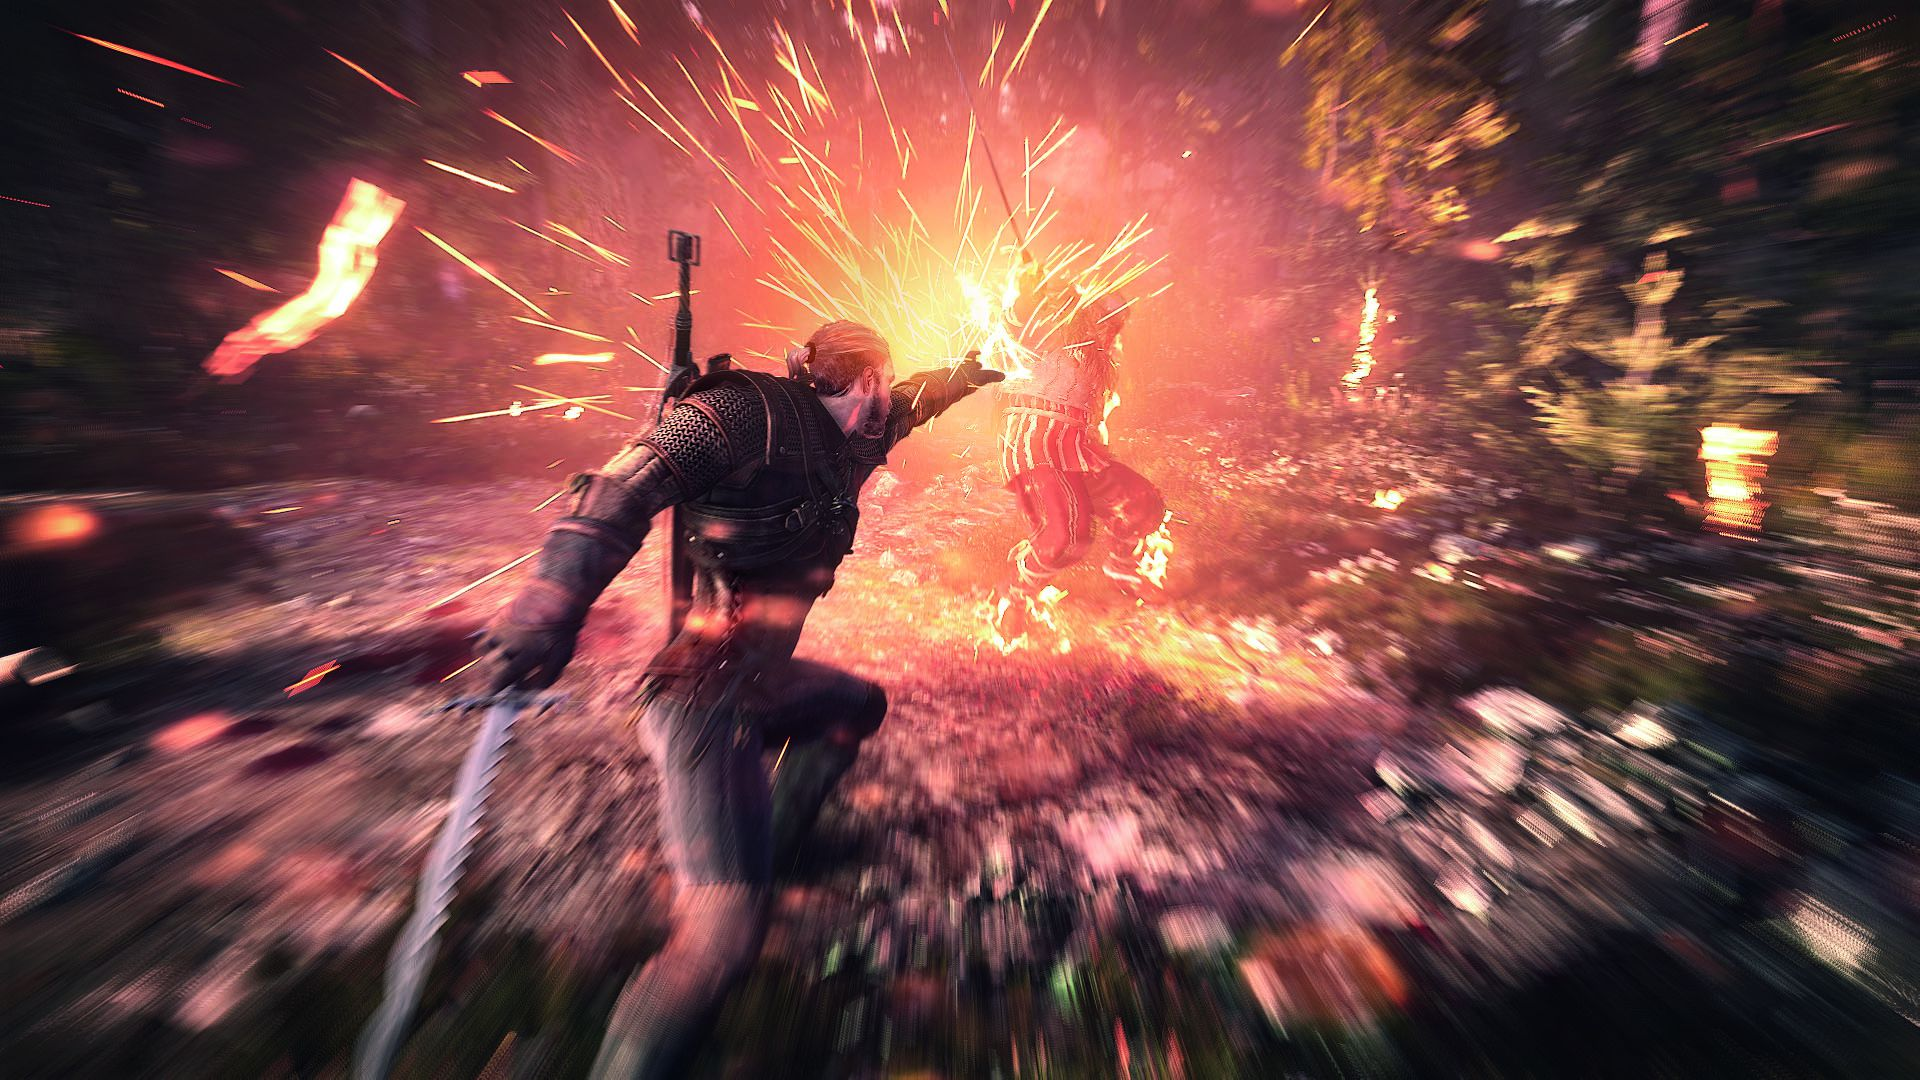 6278_the_witcher_3_wild_hunt_igni_effect